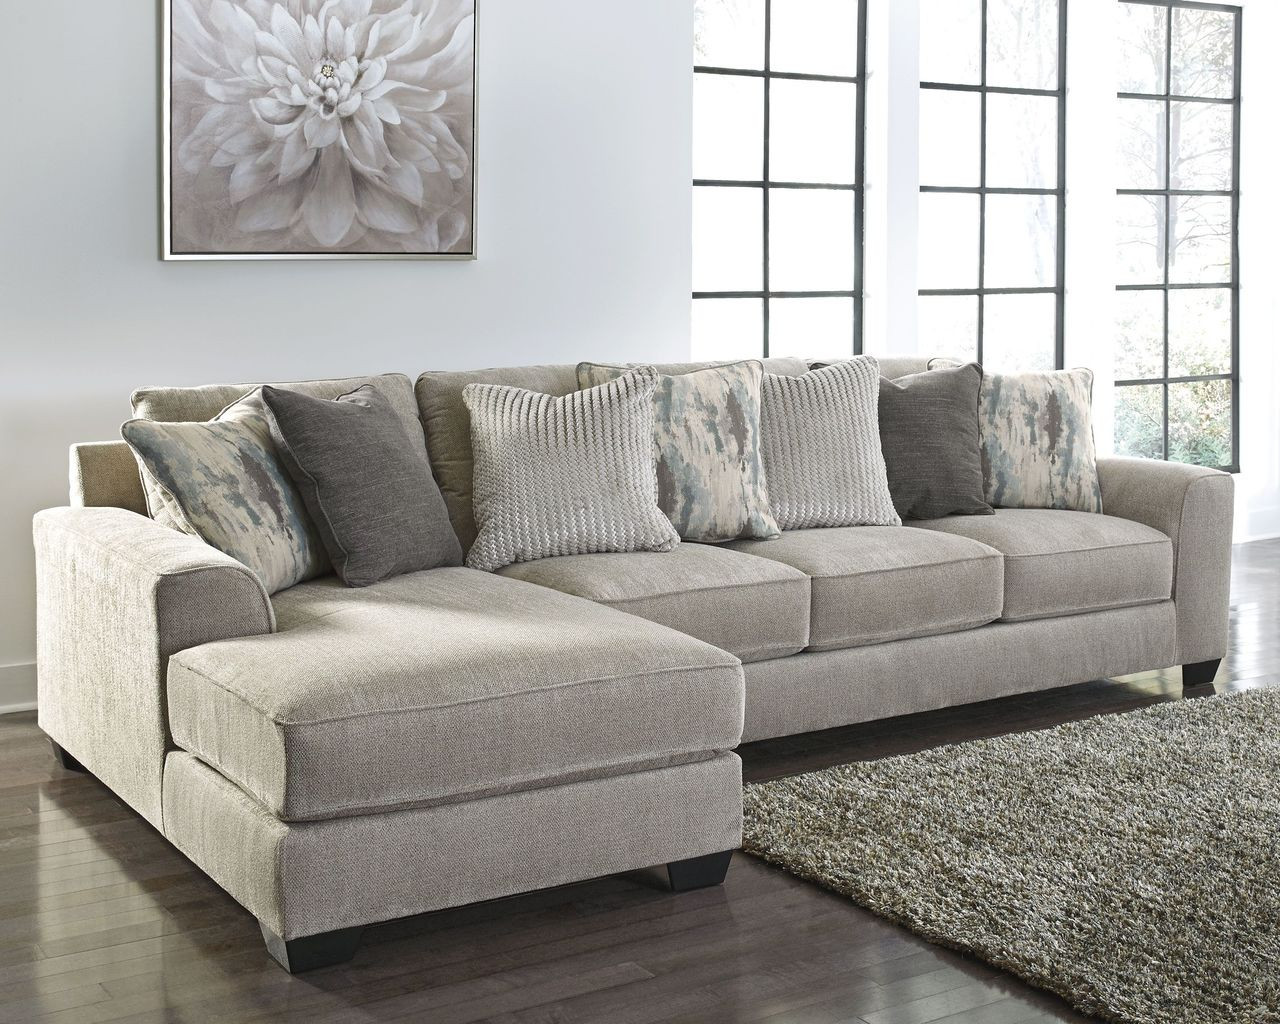 Pleasing Ardsley Pewter Laf Corner Chaise Raf Sofa Sectional Pdpeps Interior Chair Design Pdpepsorg